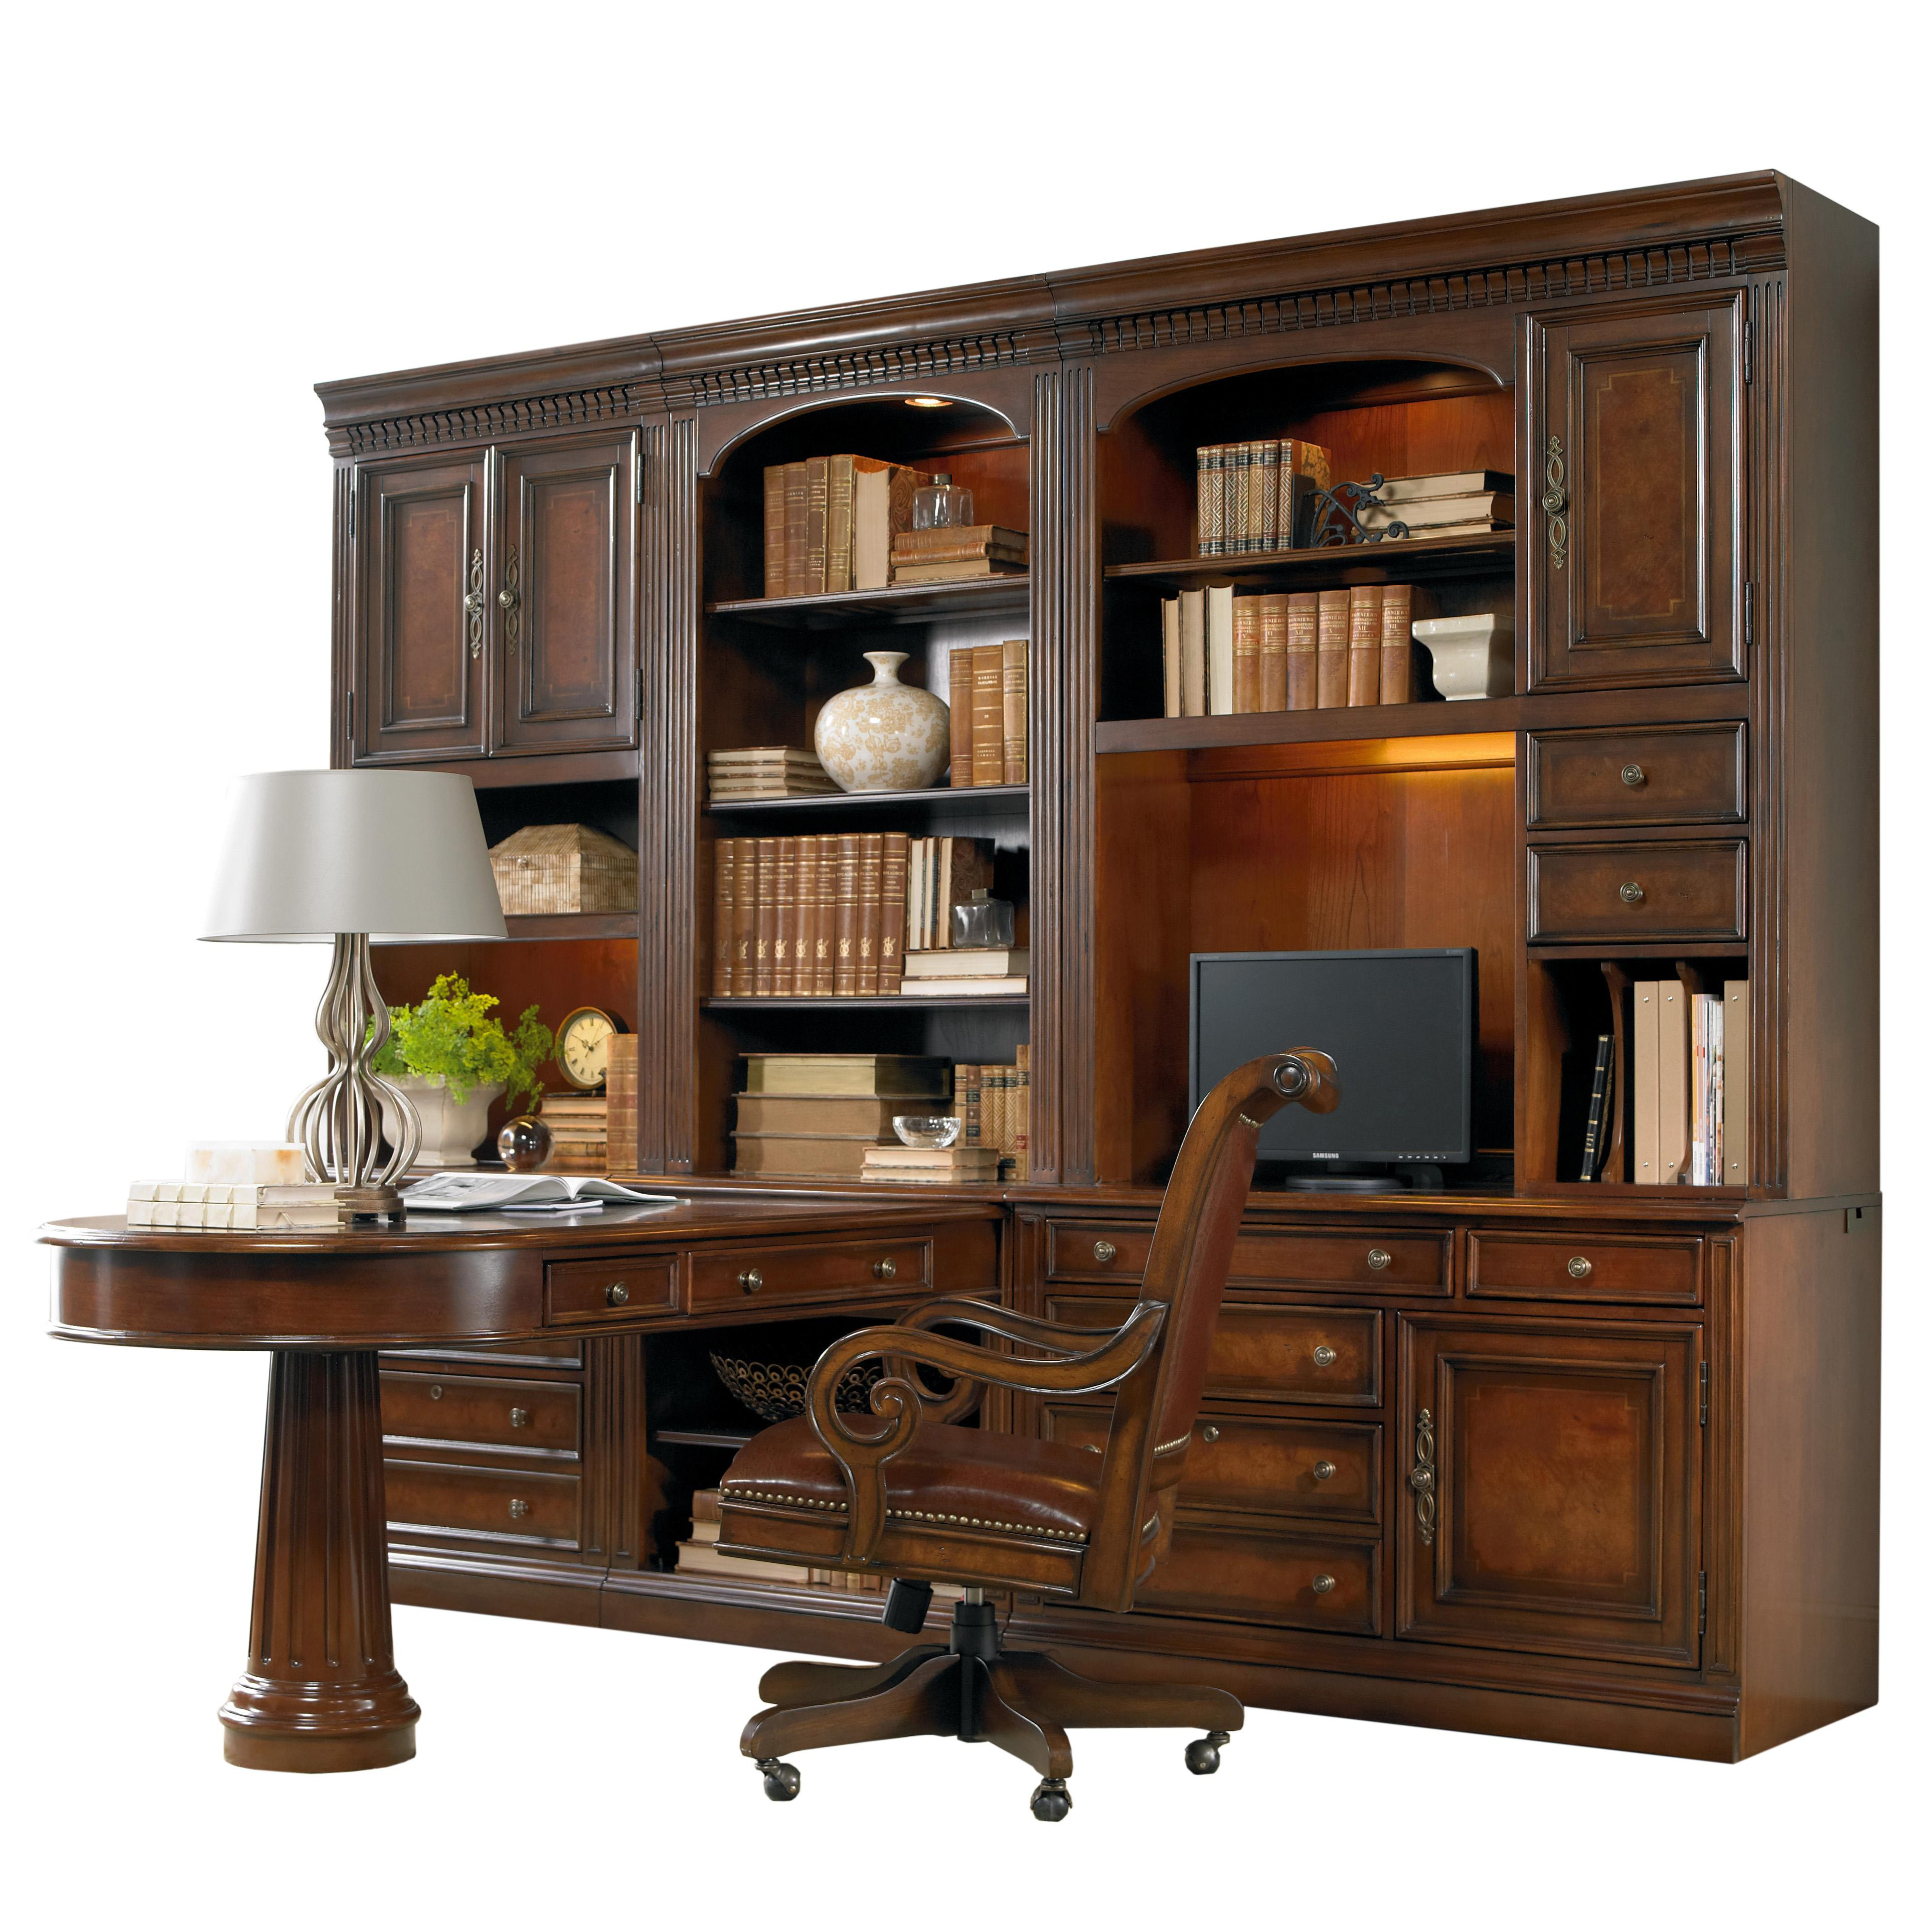 European Renaissance II Office Wall Unit with Peninsula Desk by Hooker Furniture at Zak's Home